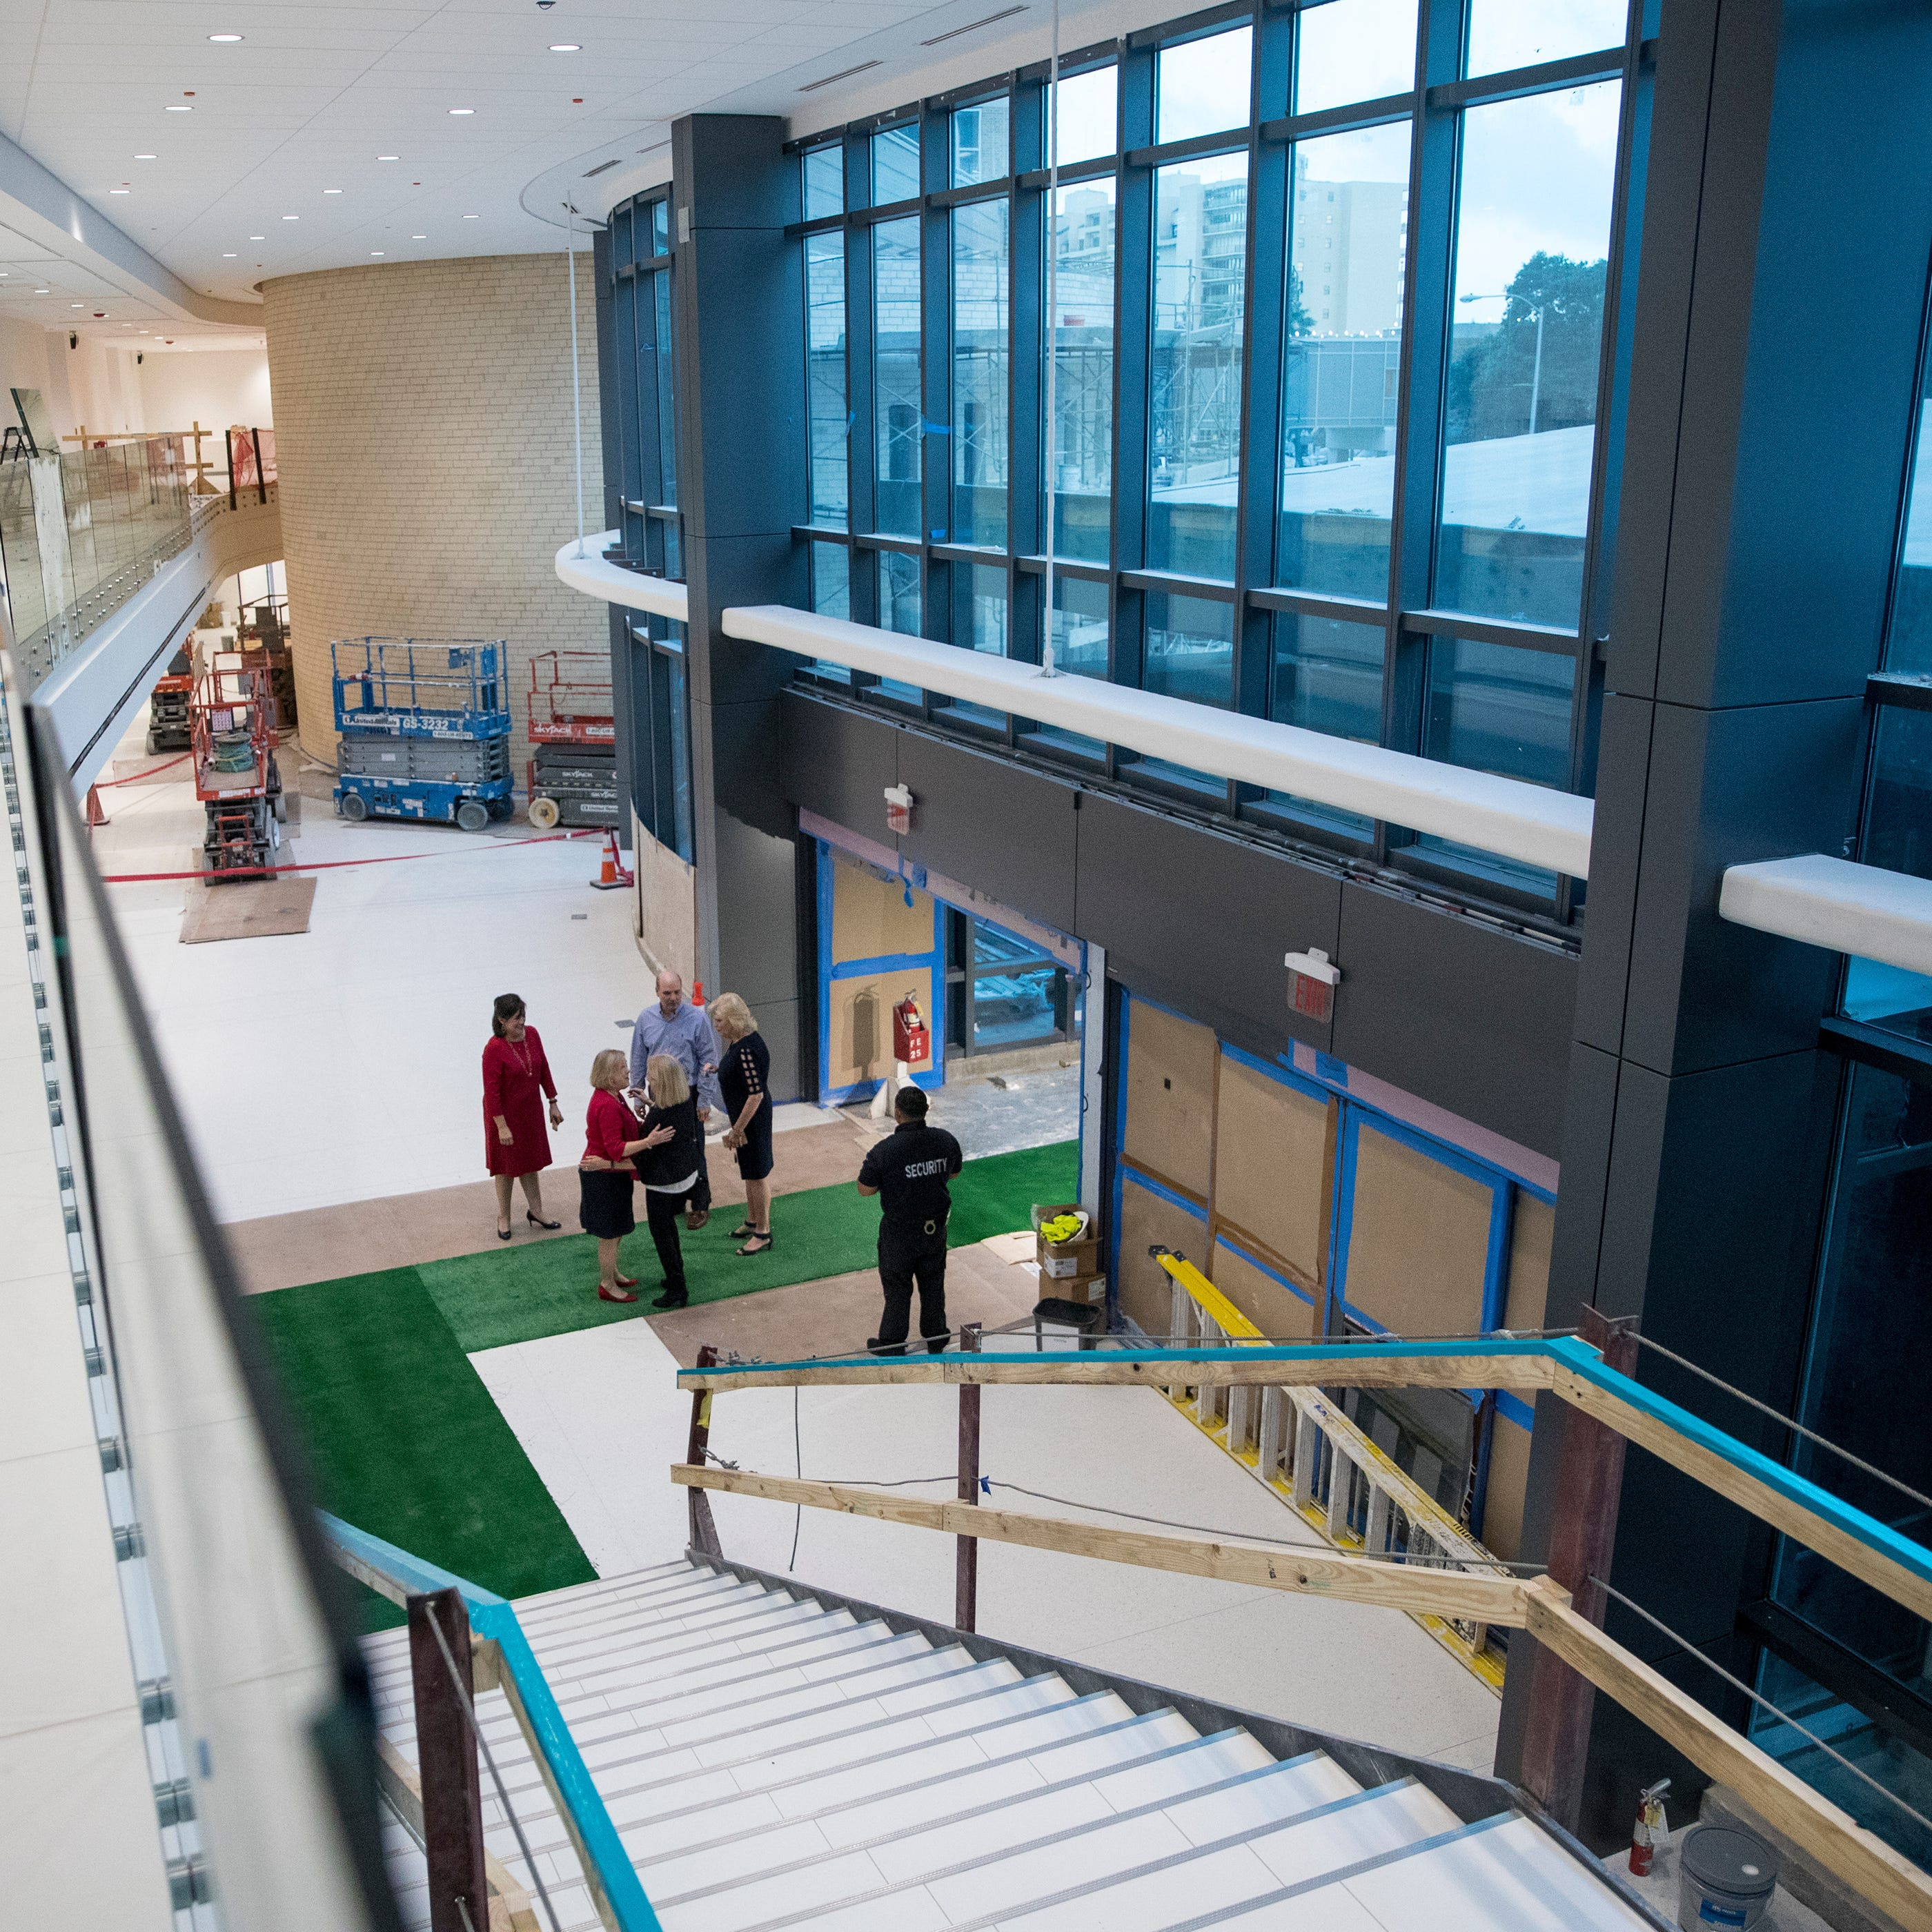 Christus Spohn Hospital Shoreline held a tour of their new Patient Care Tower on Thursday, November 8, 2018. The tower includes about 200 new patient beds, a new and larger emergency department, public space, chapel, among other additions. The tower's new lobby can be seen from the second floor.